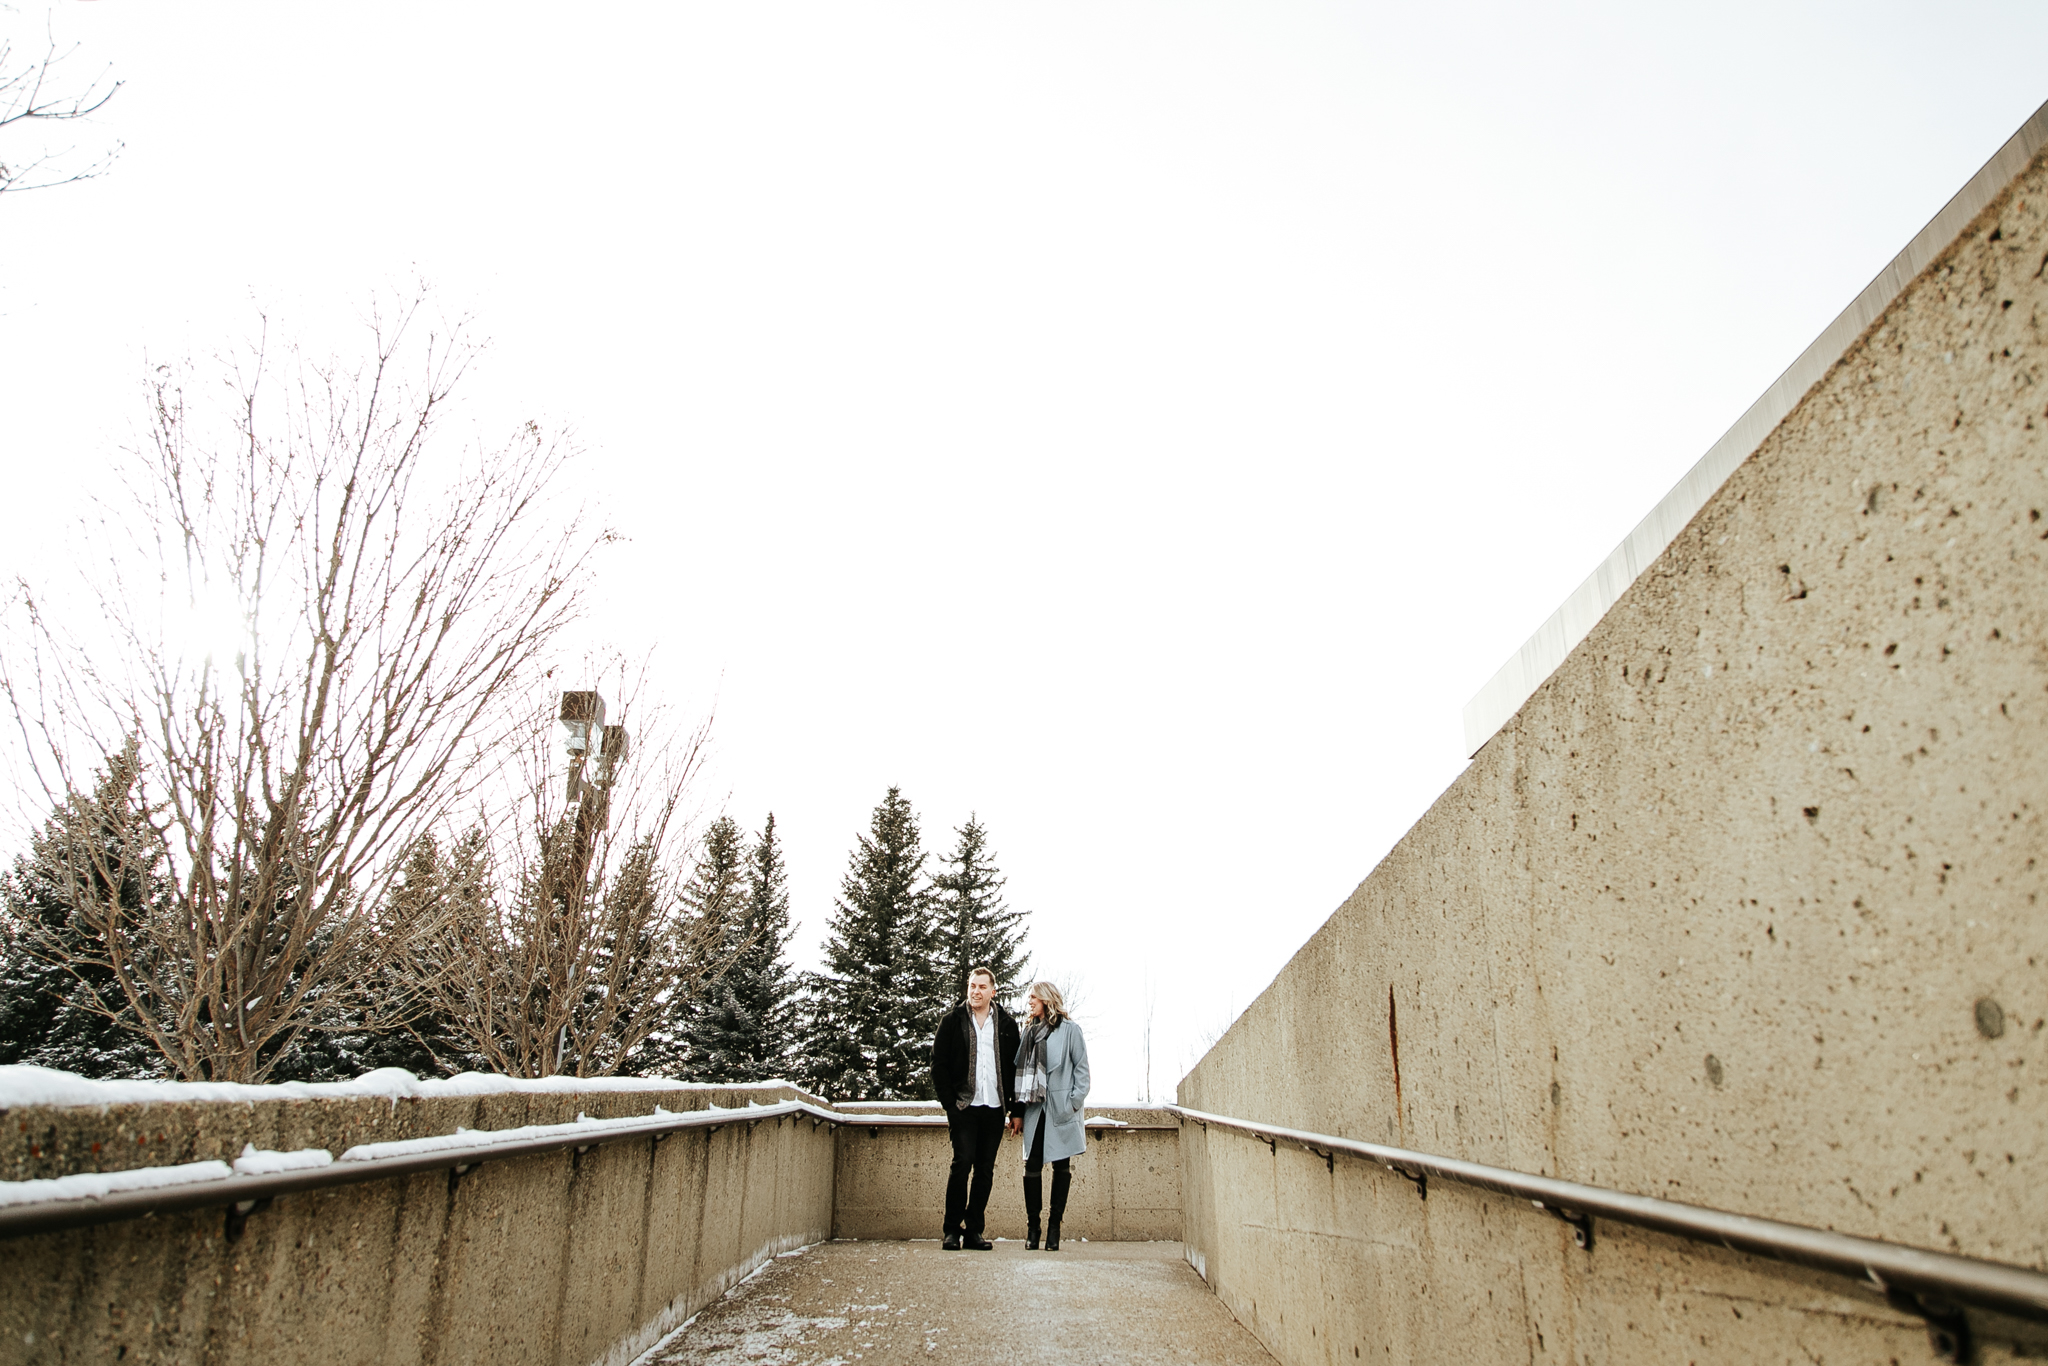 lethbridge-photographer-love-and-be-loved-photography-brandon-danielle-winter-engagement-downtown-yql-picture-image-photo-20.jpg